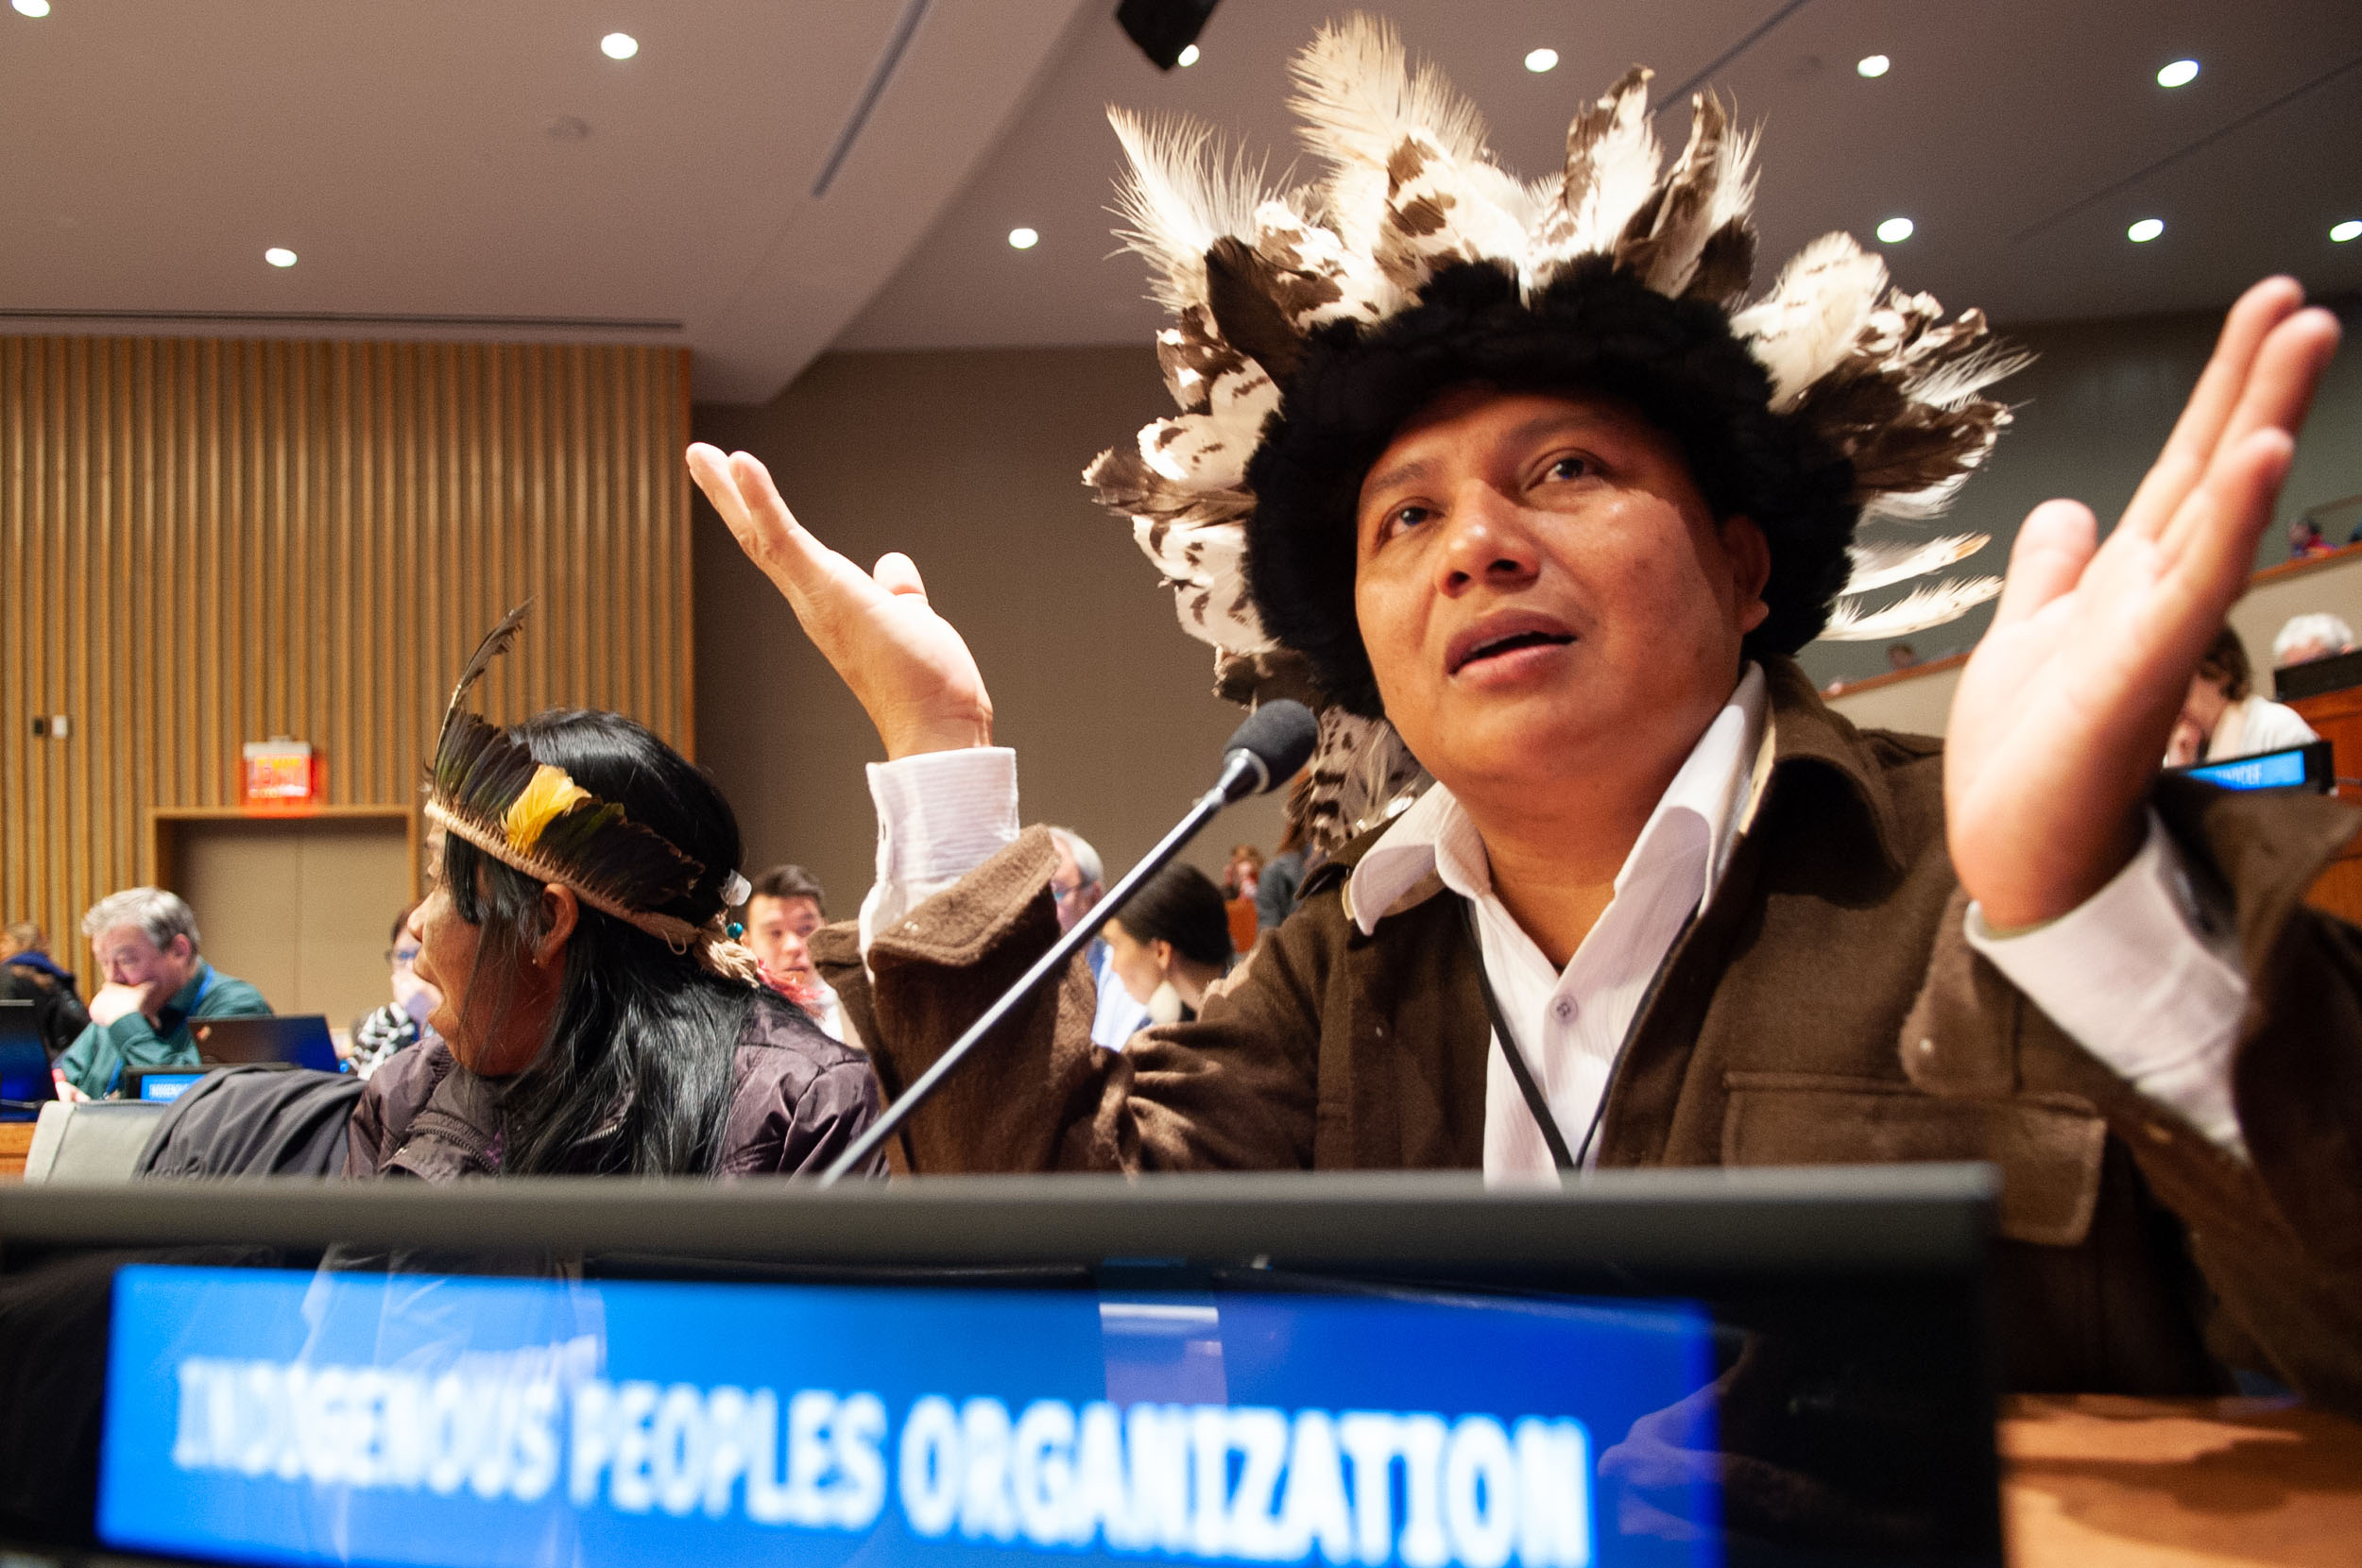 Adriano in a suit and his Indigenous regalia, a headdress with balck and white feathers, sat at a desk at the UN, speaking into a microphone with his hands in the air.